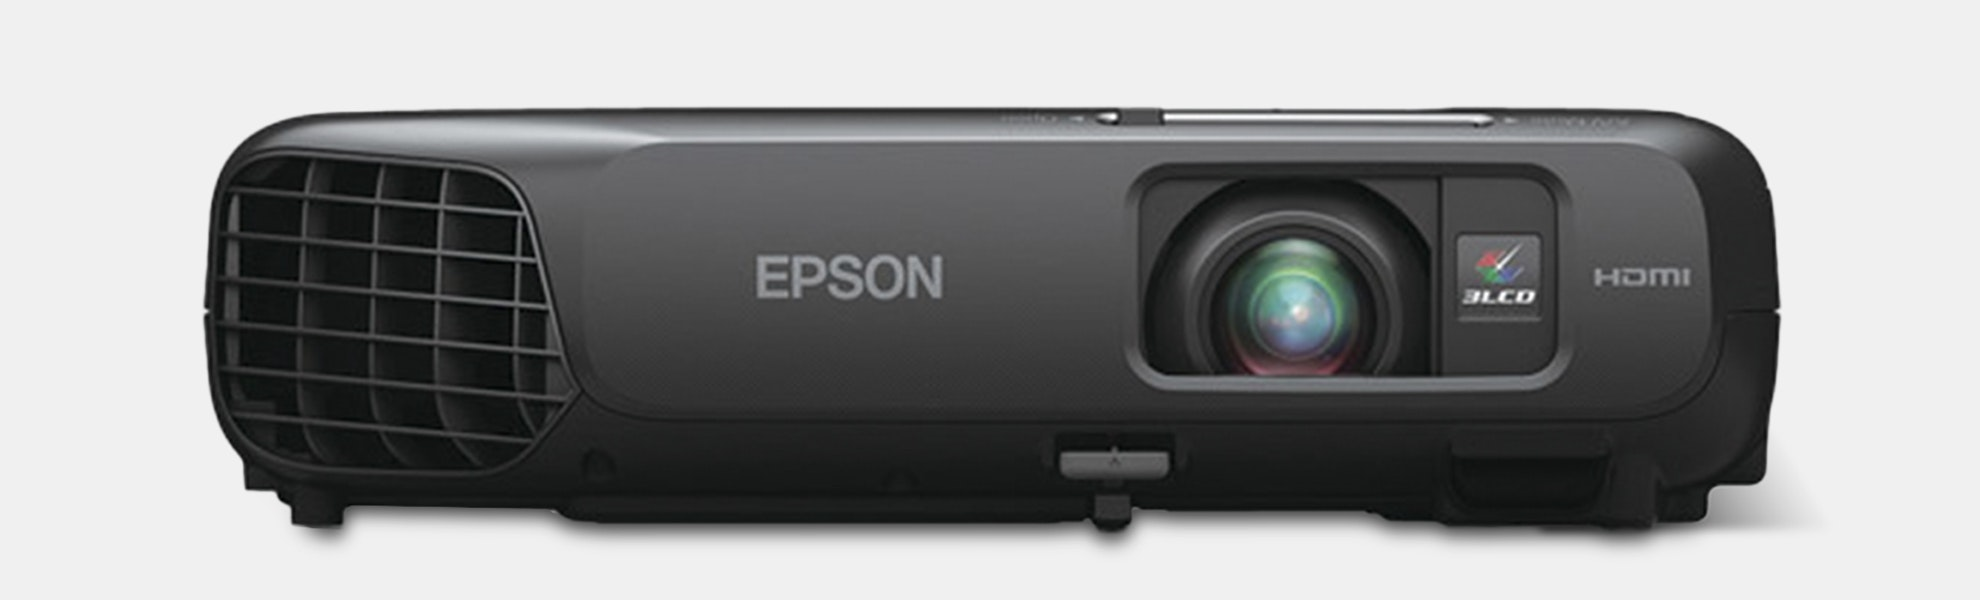 Epson EX5220 Wireless XGA 3LCD Projector (Refurb)